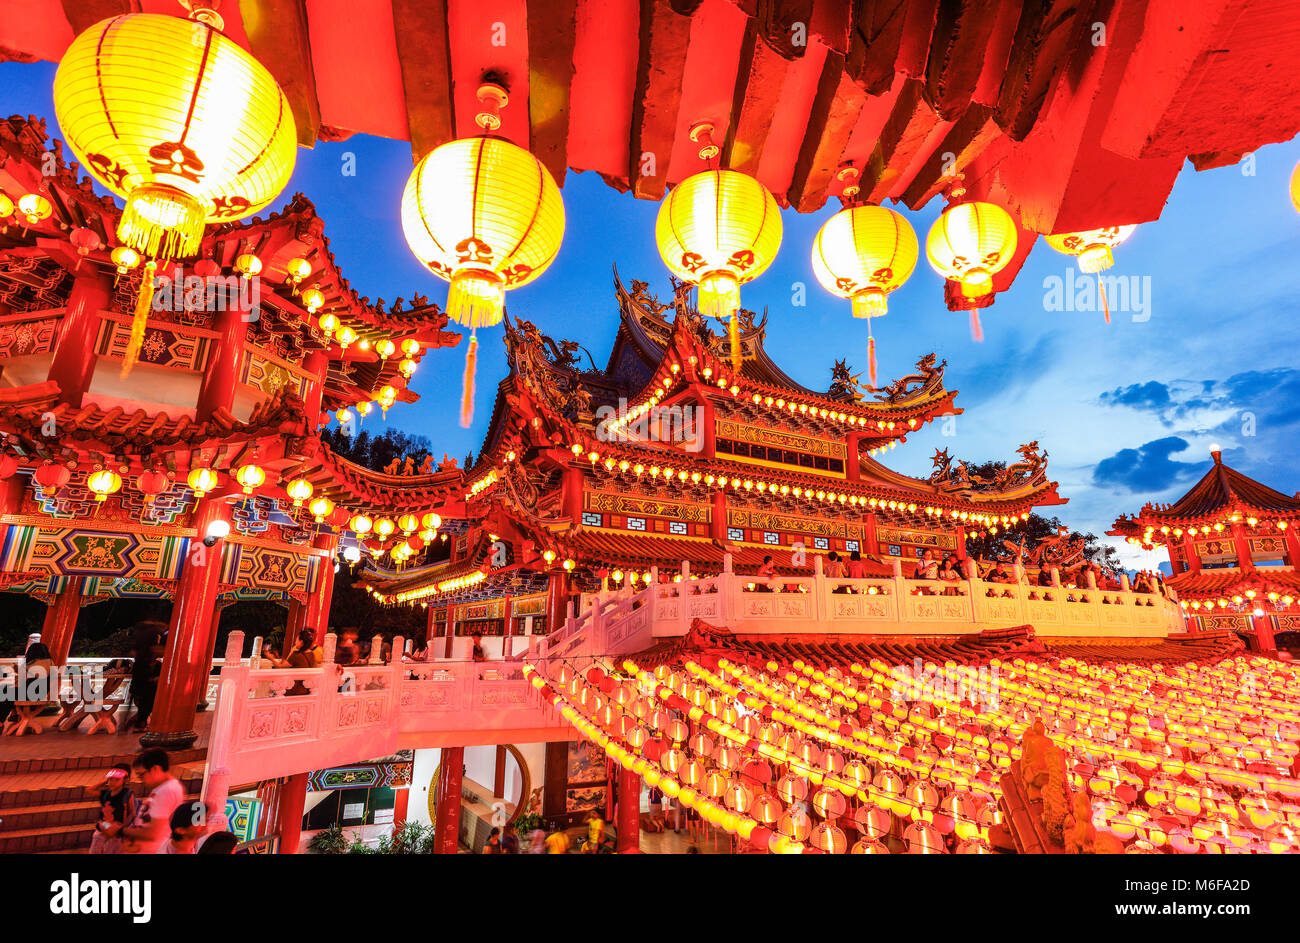 The Red Lanterns of Thean Hou Temple, Kuala Lumpur during the Lunar Chinese New Year. - Stock Image